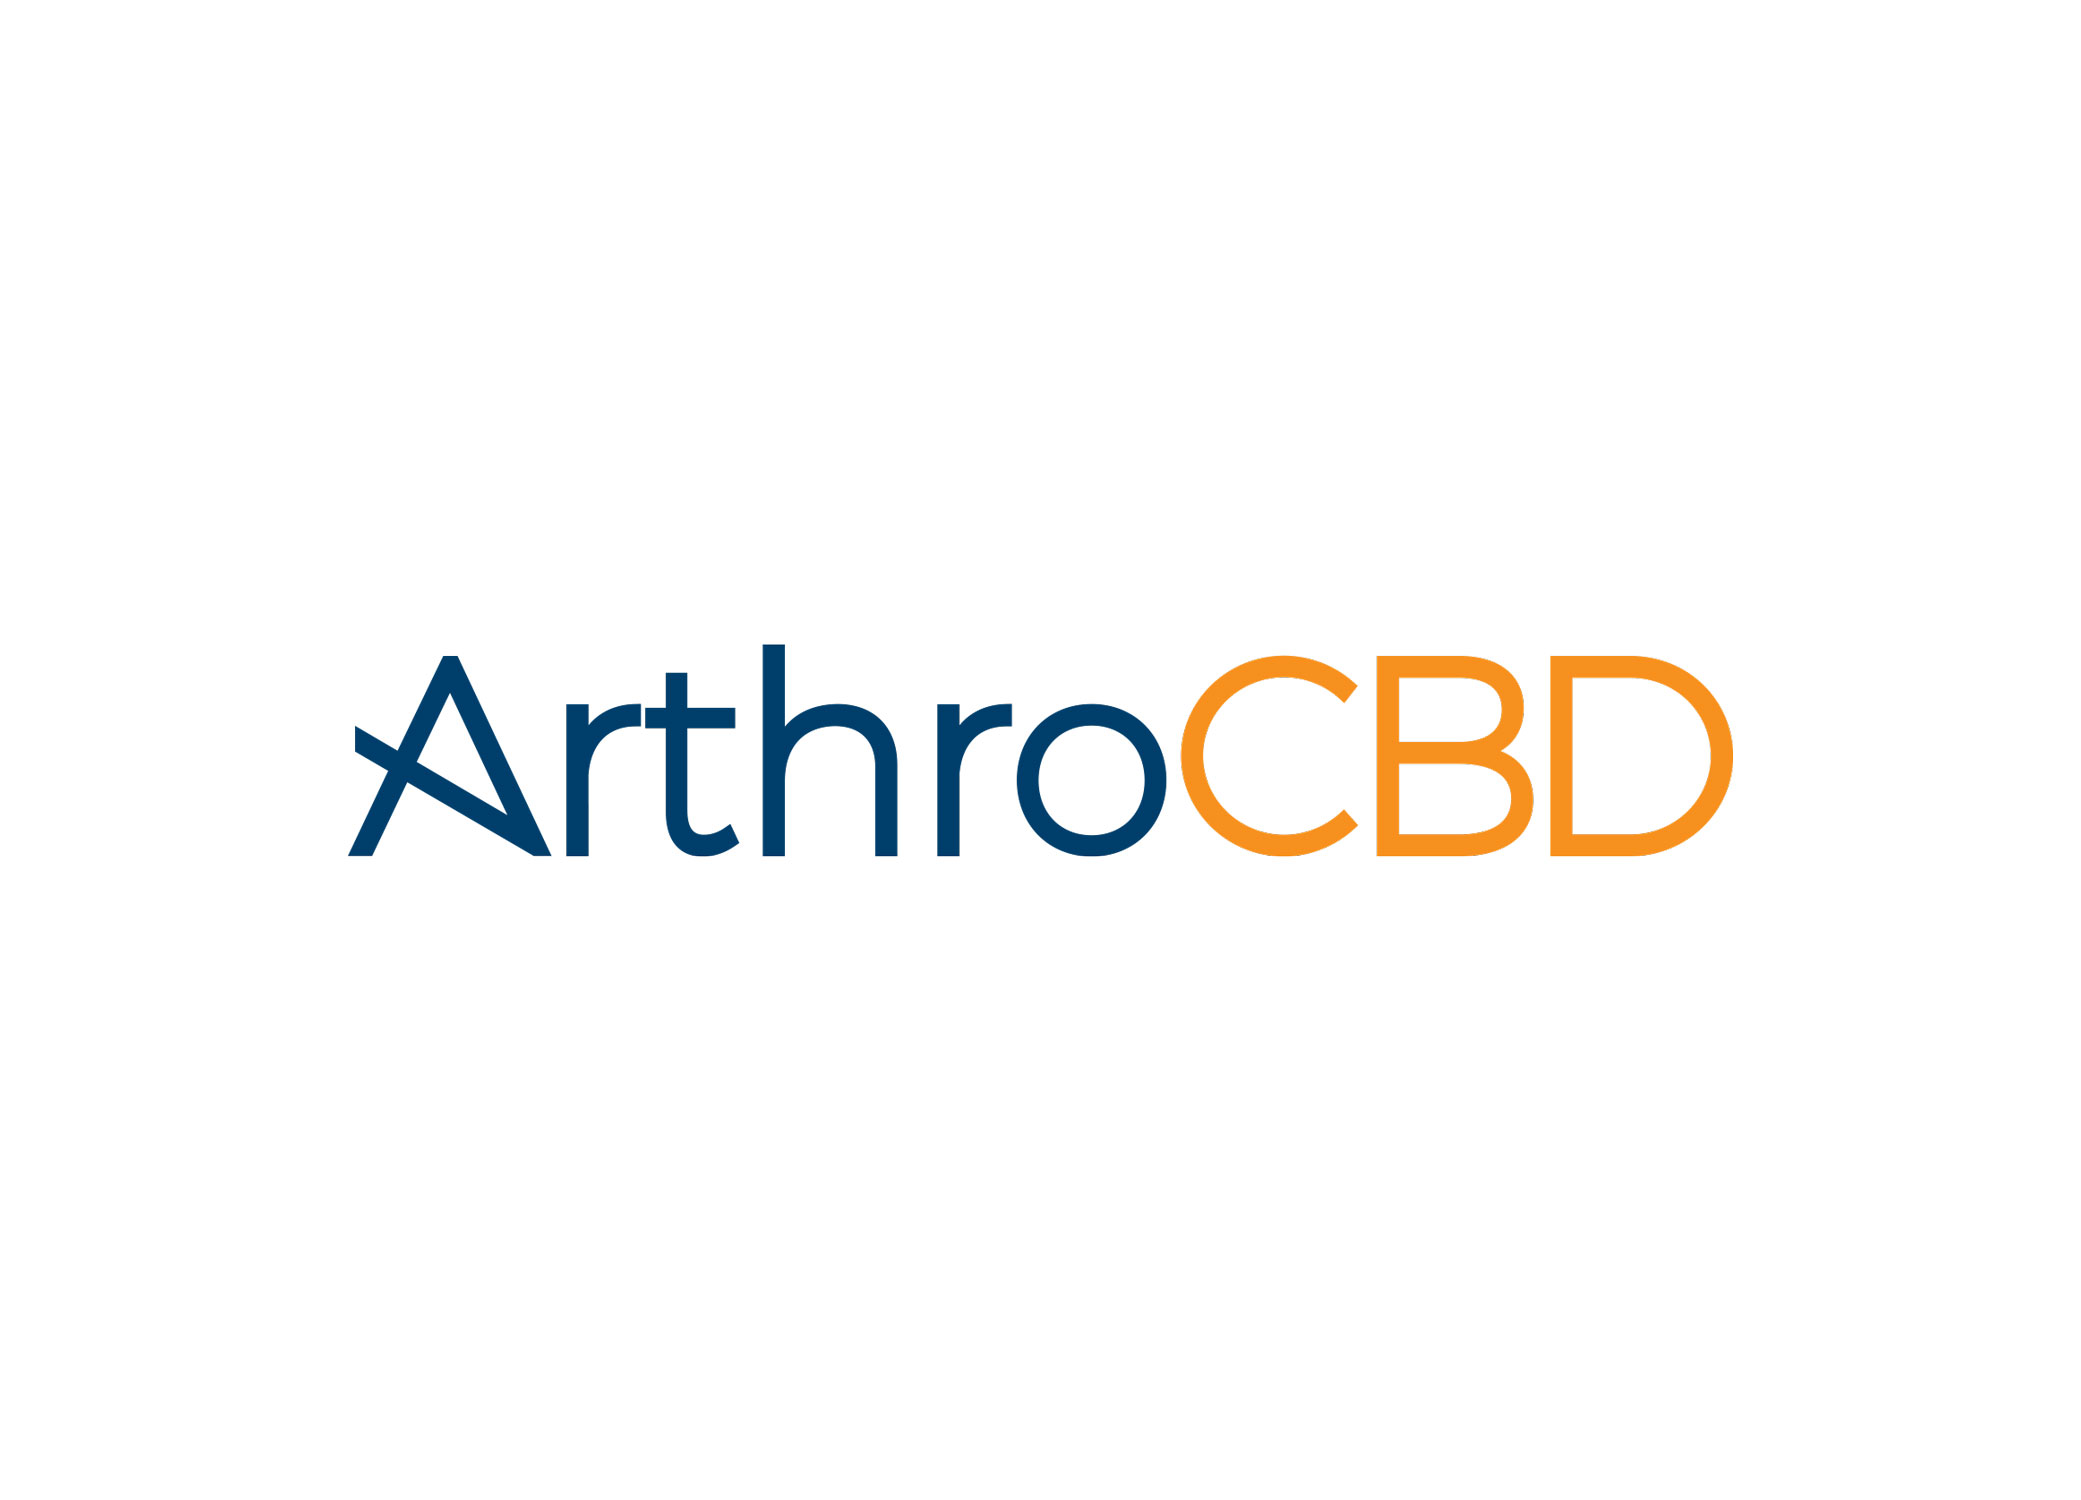 """ArthroCBD logo design with diagonal angle across the """"A"""" and navy blue and orange typography."""